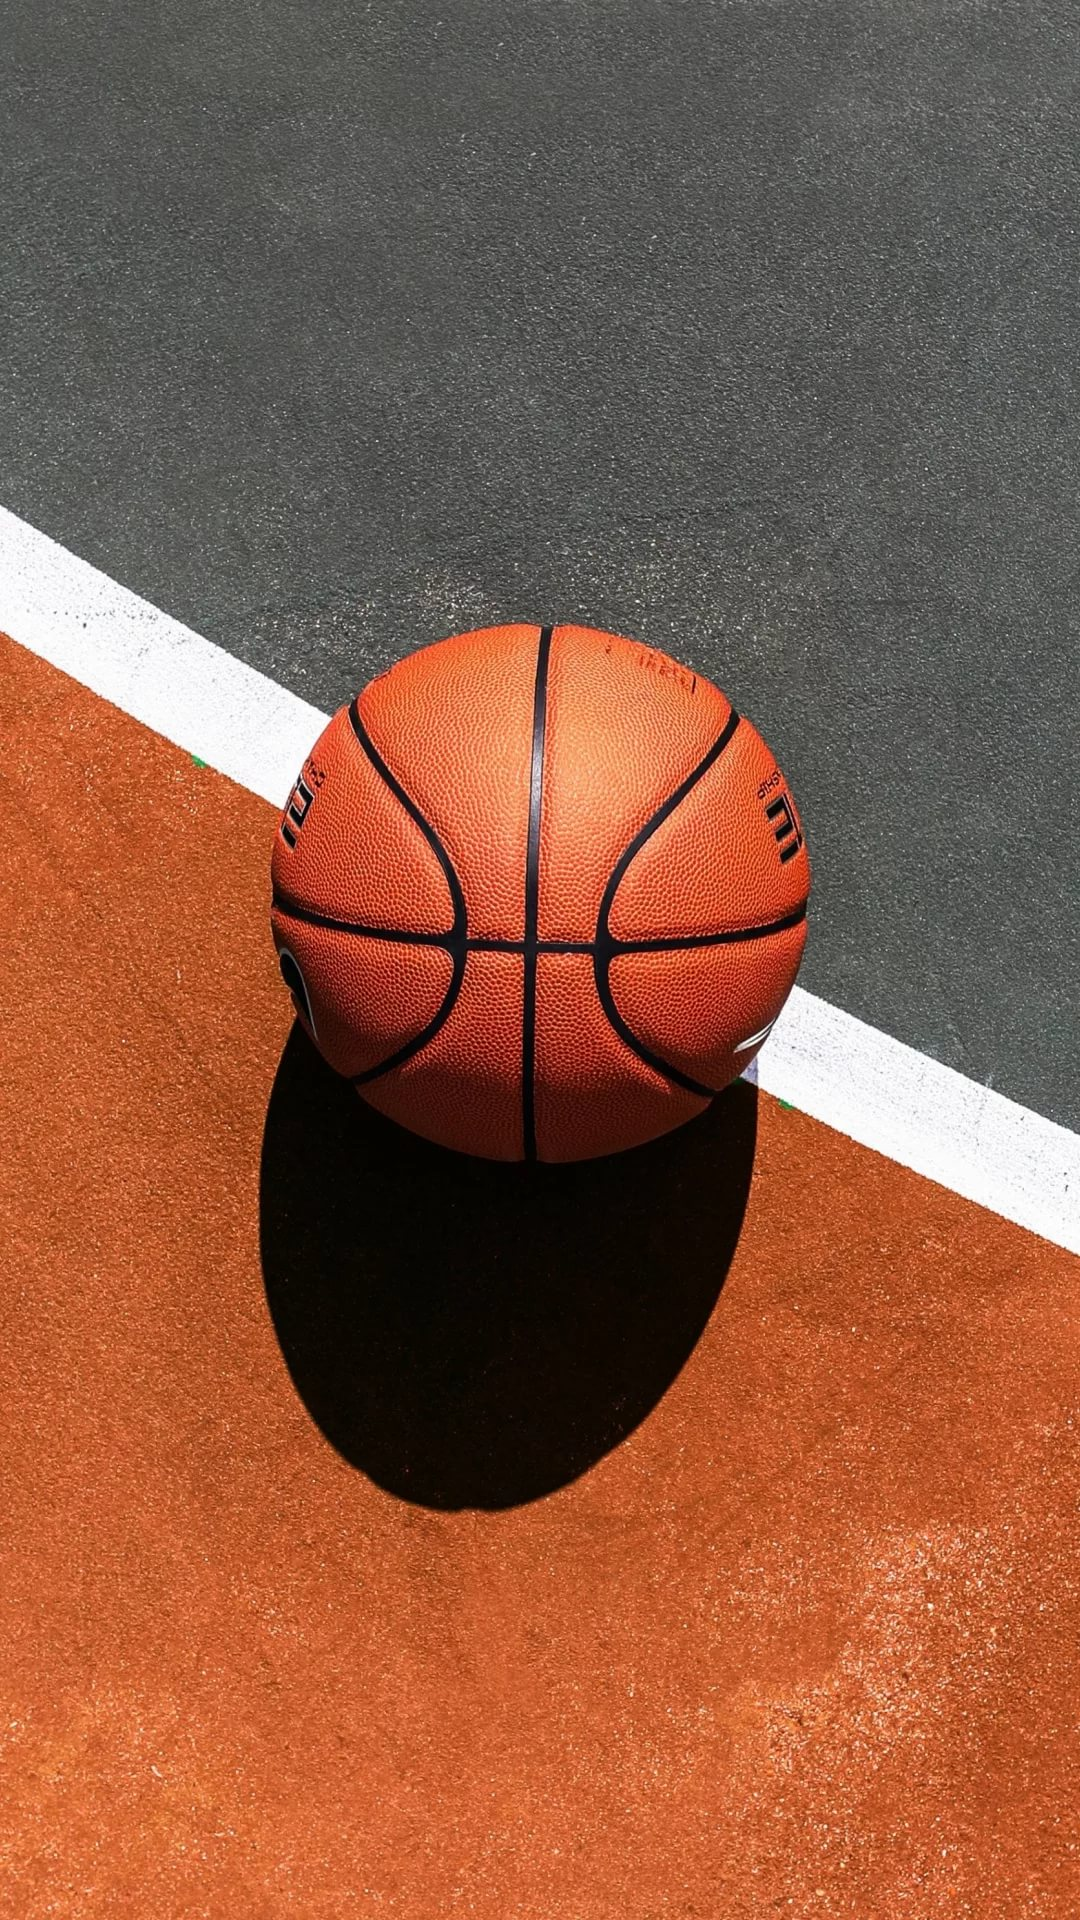 Basketball Court wallpaper for android